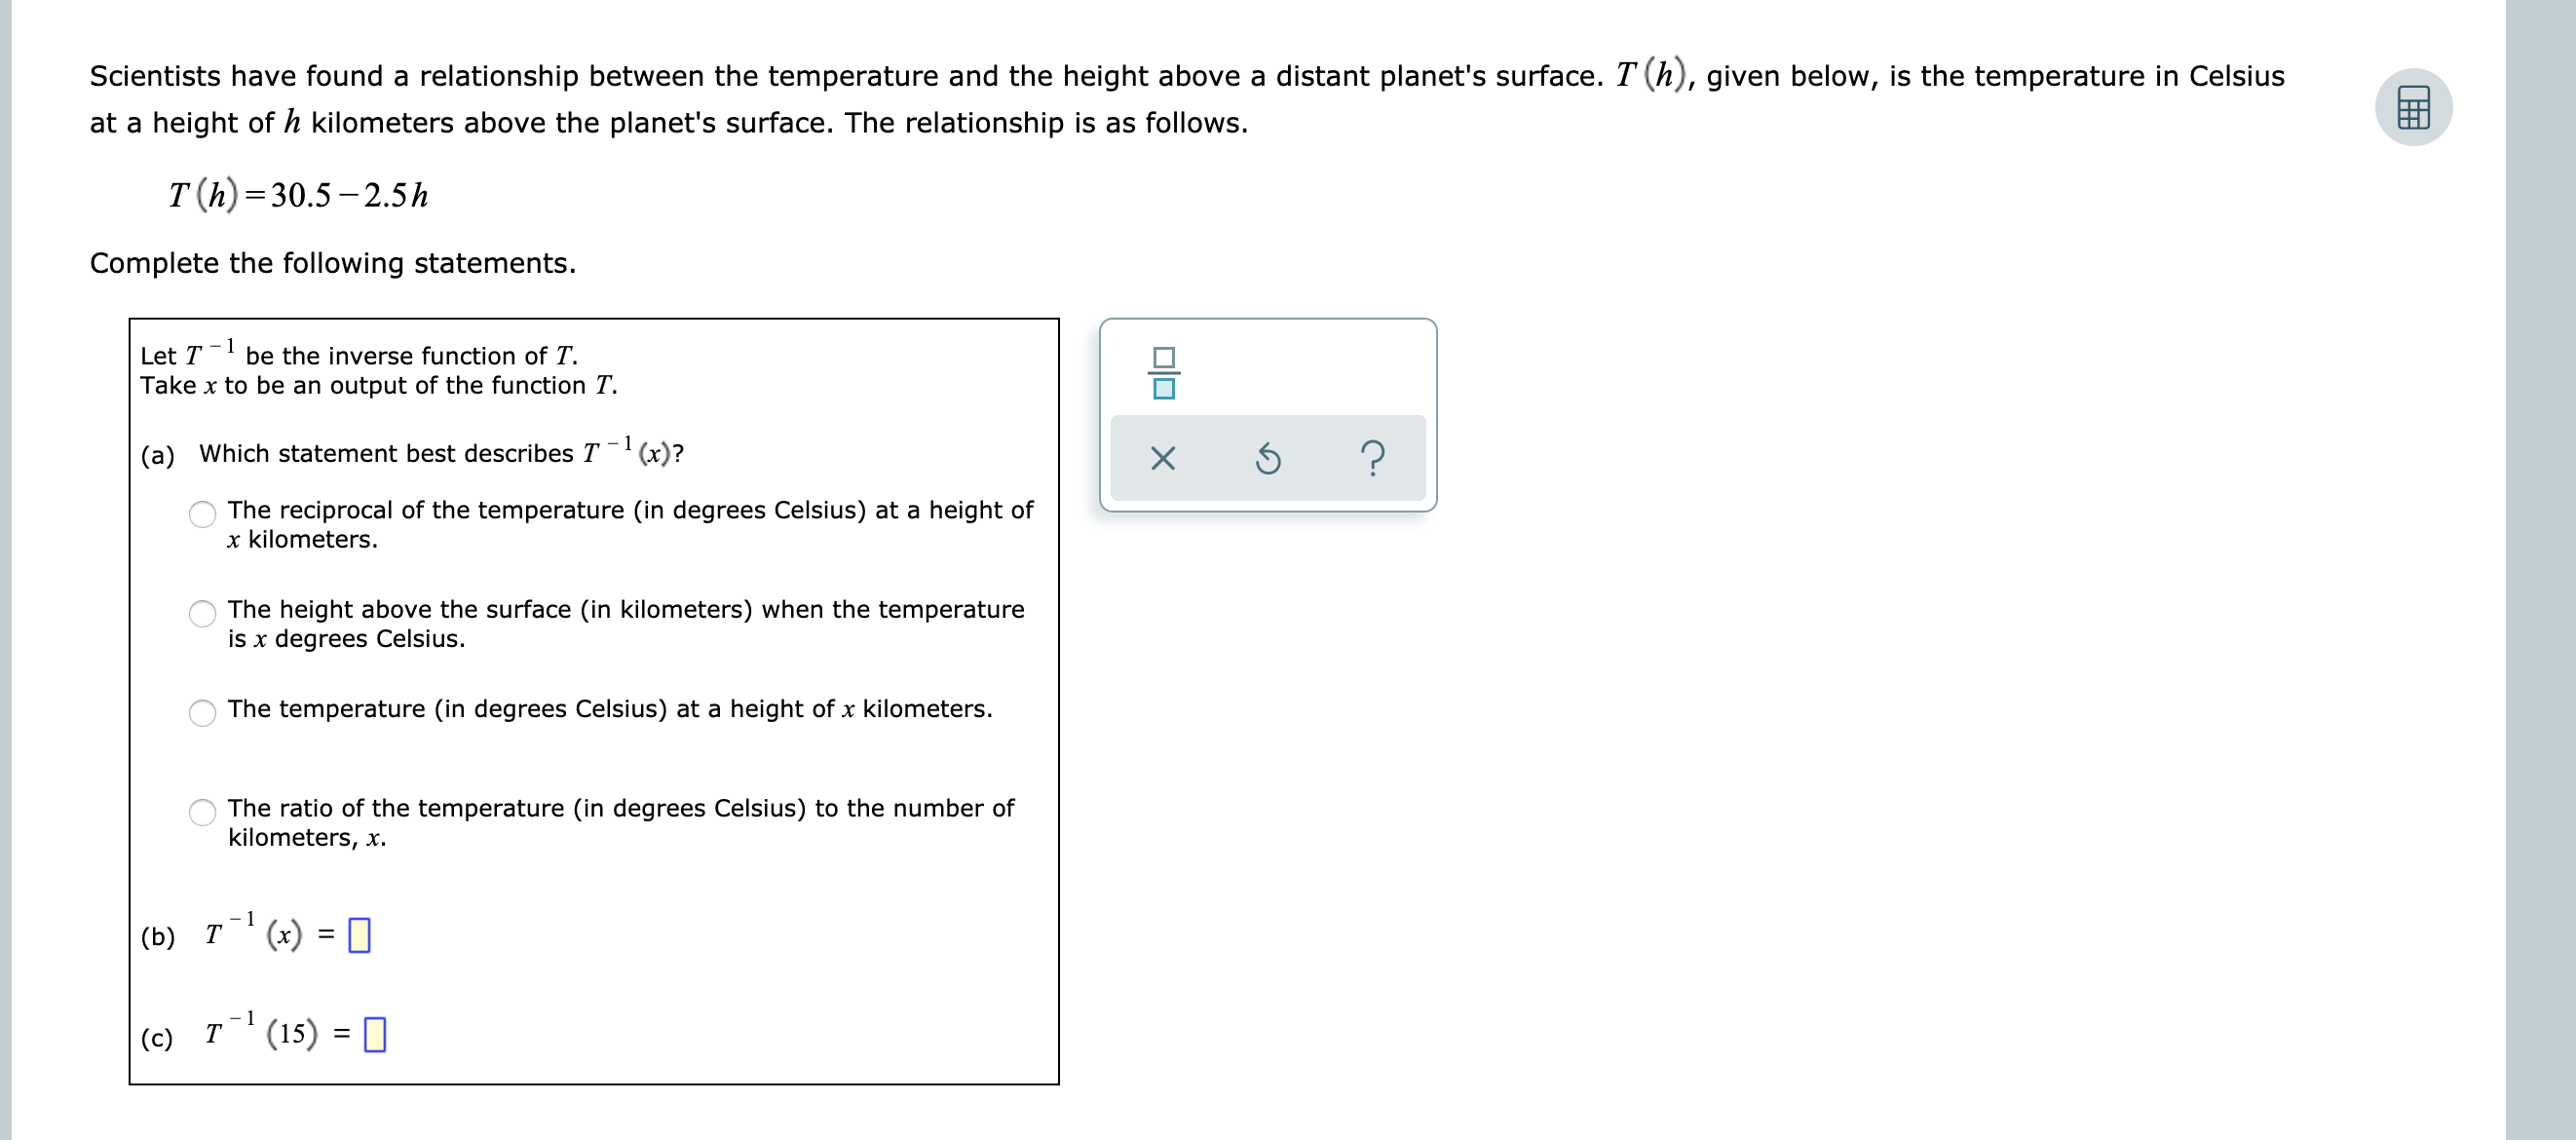 Scientists have found a relationship between the temperature and the height above a distant planet's surface. T (h), given below, is the temperature in Celsius at a height ofh kilometers above the planet's surface. The relationship is as follows. T (h) 30.5-2.5h Complete the following statements. - 1 Let T be the inverse function of T Take x to be an output of the function T ? (a) Which statement best describes T(x)? X The reciprocal of the temperature (in degrees Celsius) at a height of x kilometers. The height above the surface (in kilometers) when the temperature is x degrees Celsius. The temperature (in degrees Celsius) at a height of x kilometers. The ratio of the temperature (in degrees Celsius) to the number of kilometers, x - 1 (x) = (b) Т - 1 Т (15) (c) OO